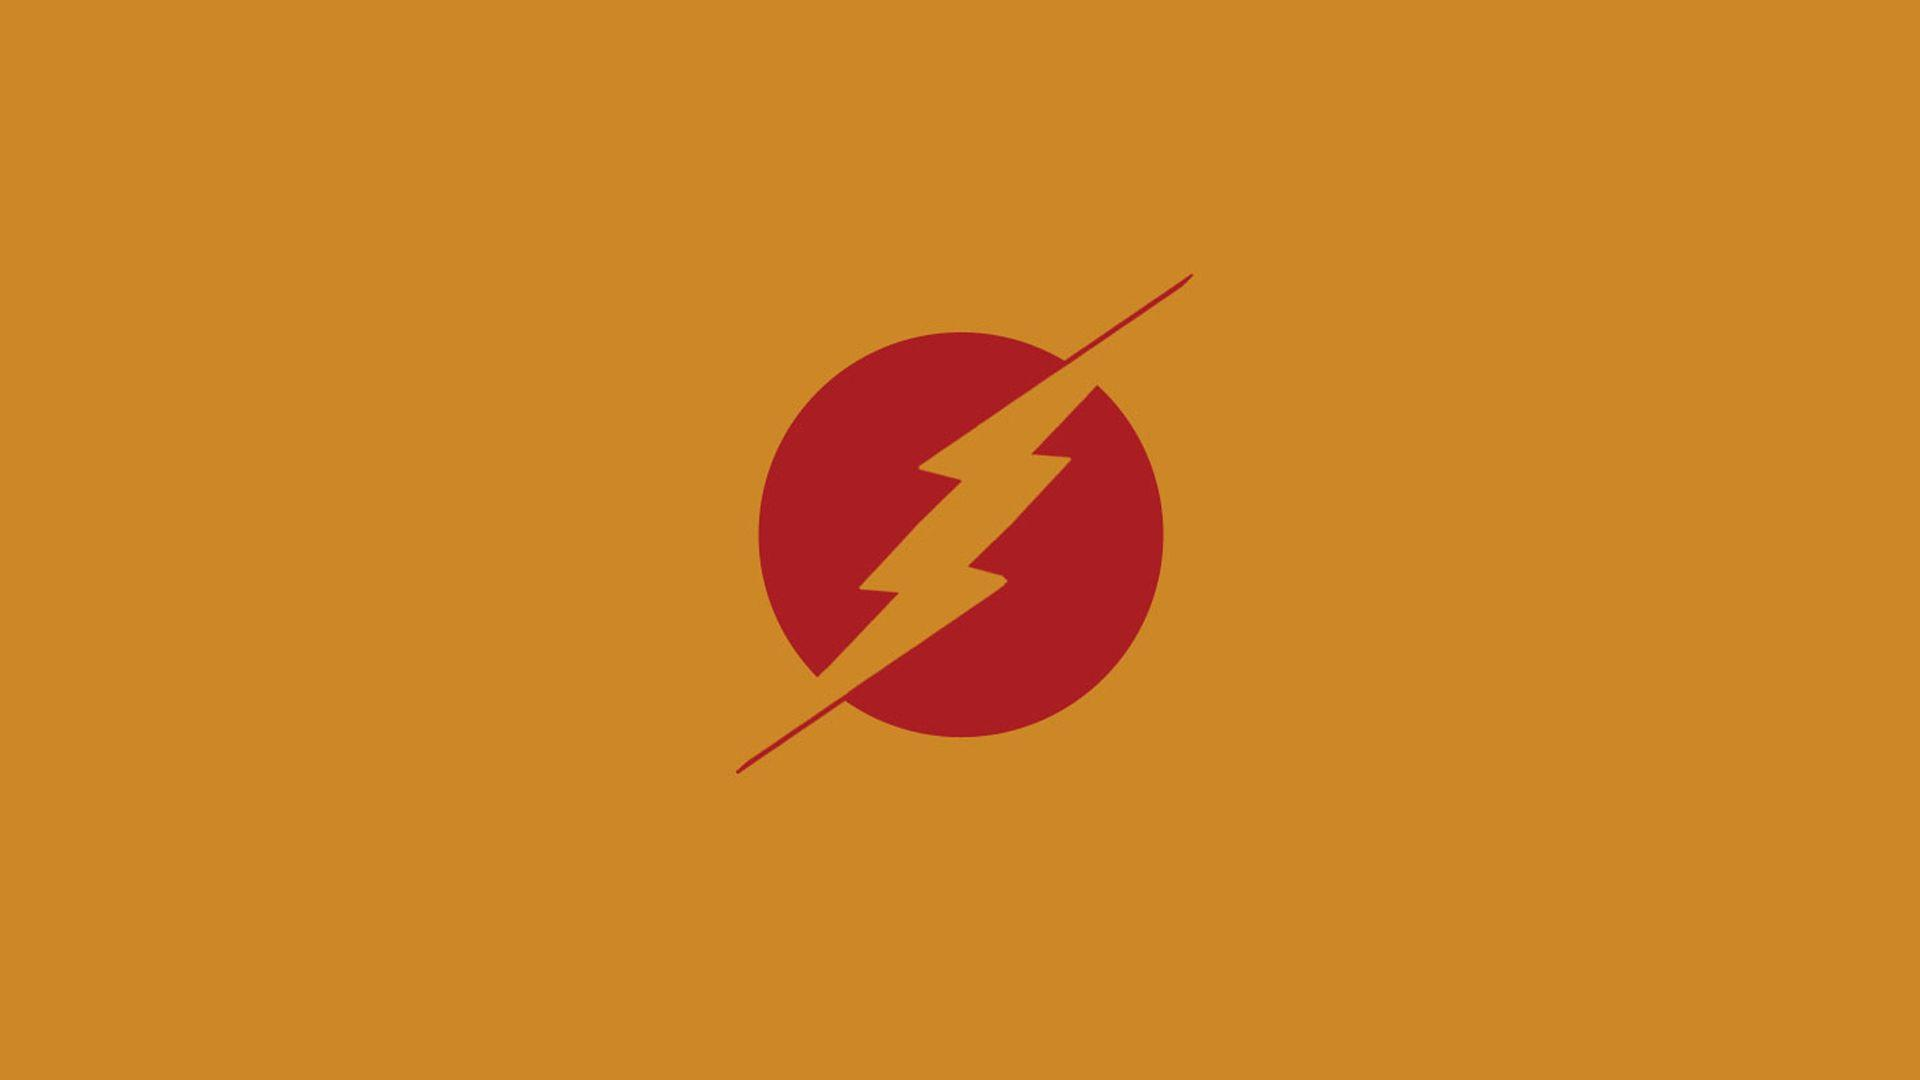 46+ HD Flash Wallpapers